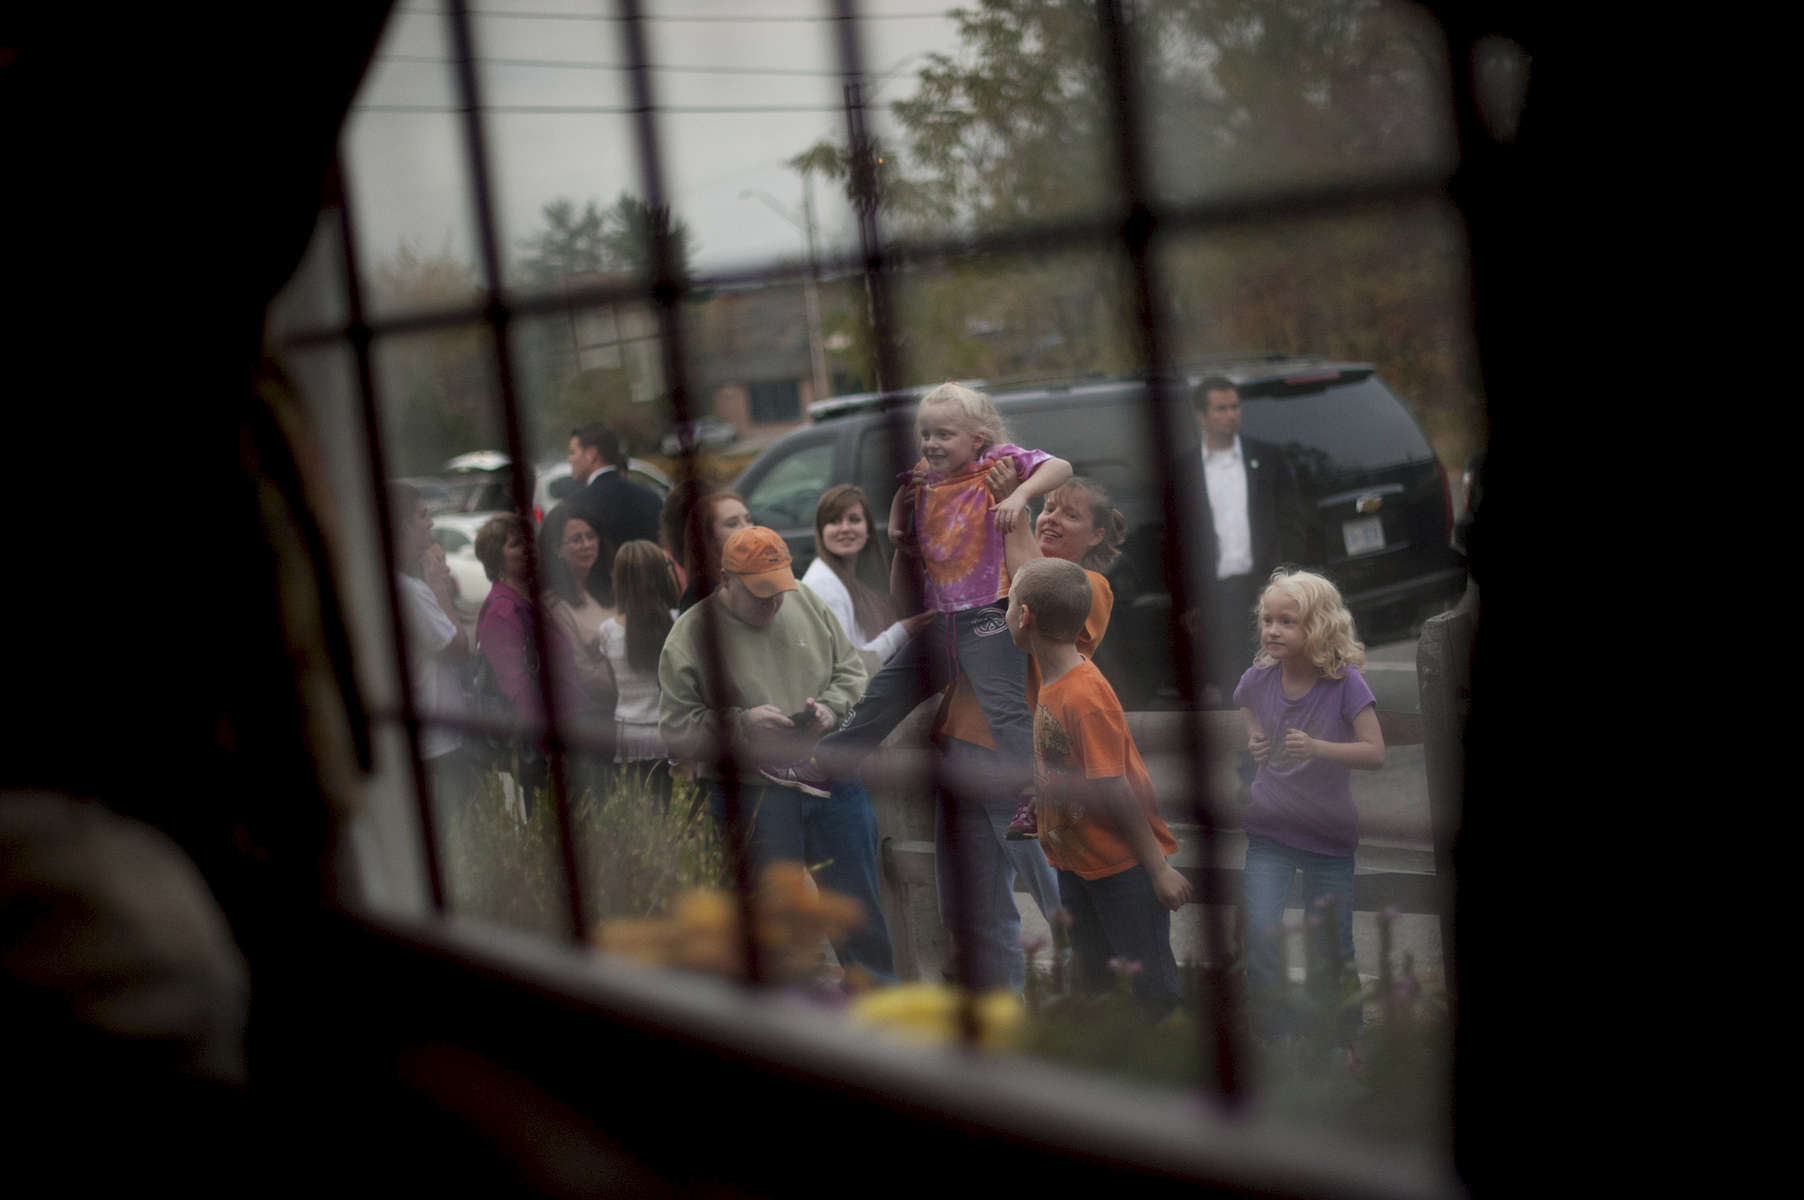 October 27, 2012 - Merrimack, NH:  A mother holds up her daughter so that she can see President Barack Obama through the window of the Common Man Pub in Merrimack, NH.  (Scout Tufankjian for Obama for America/Polaris)